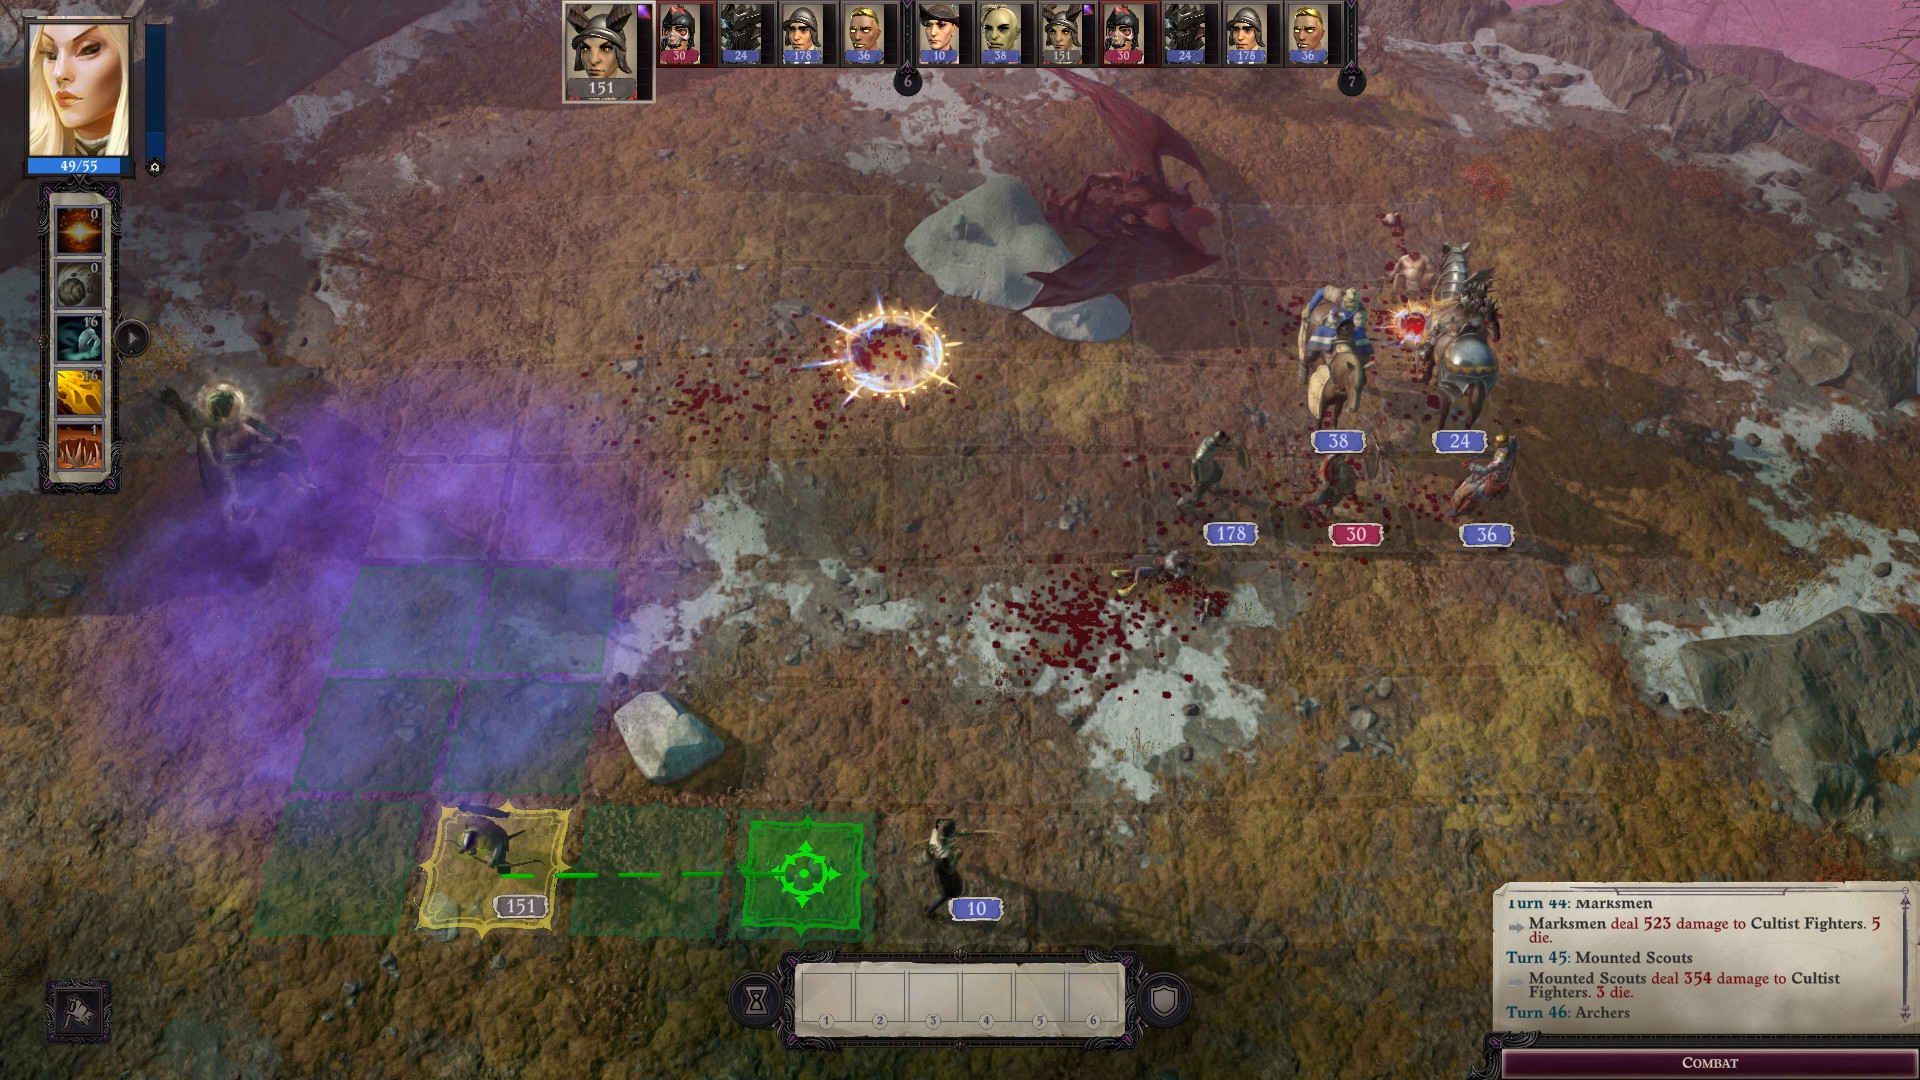 Armies clash on a board covered in purple smoke